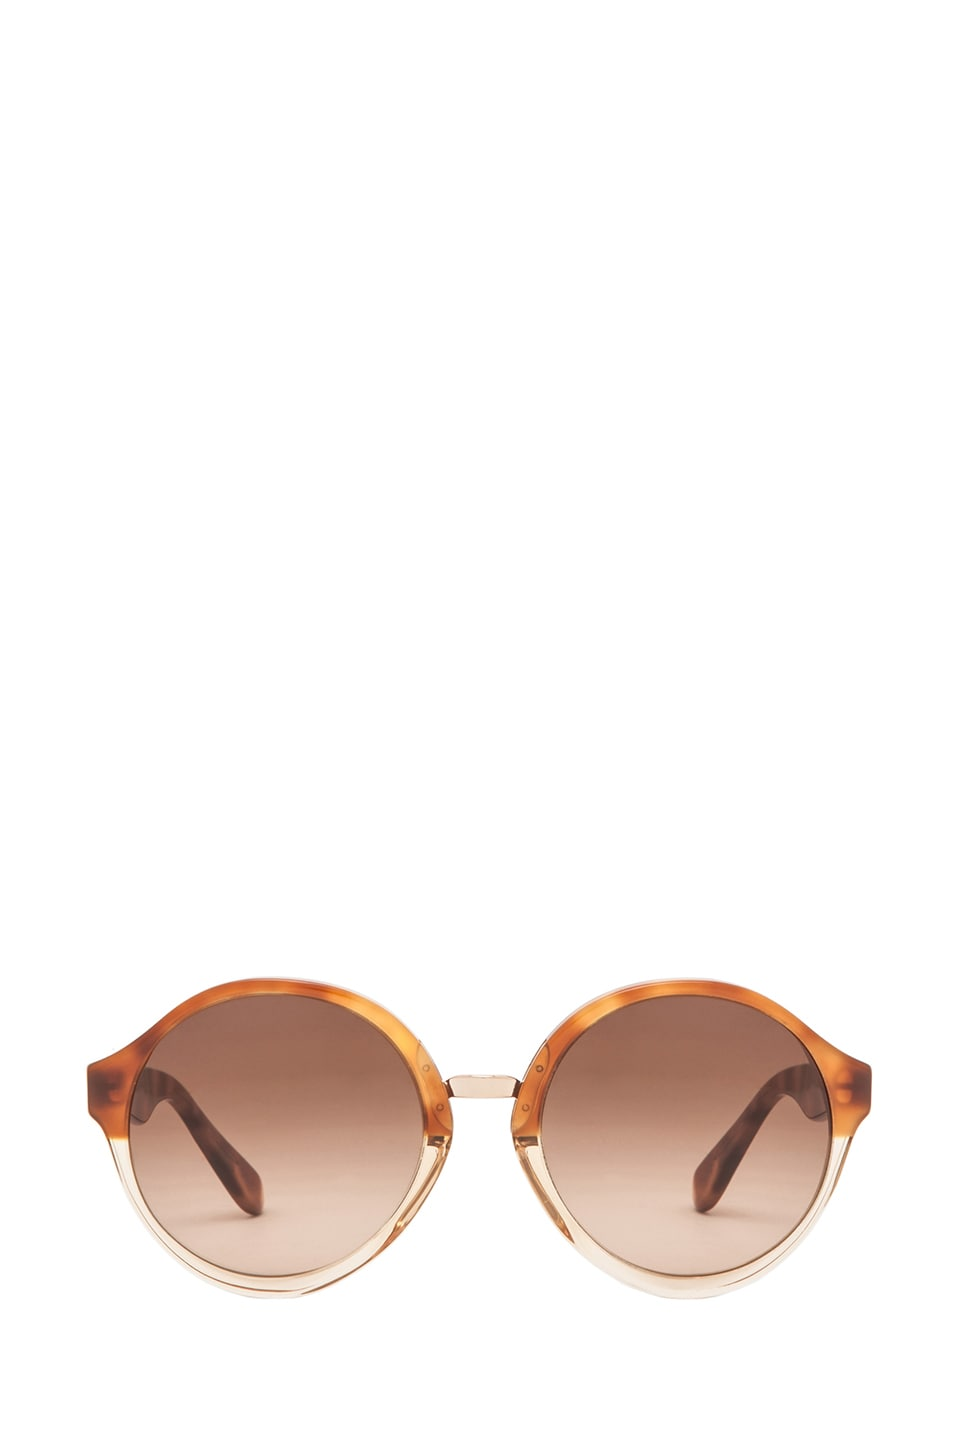 Image 1 of A.P.C. Acetate Retro Super Future Sunglasses in Caramel